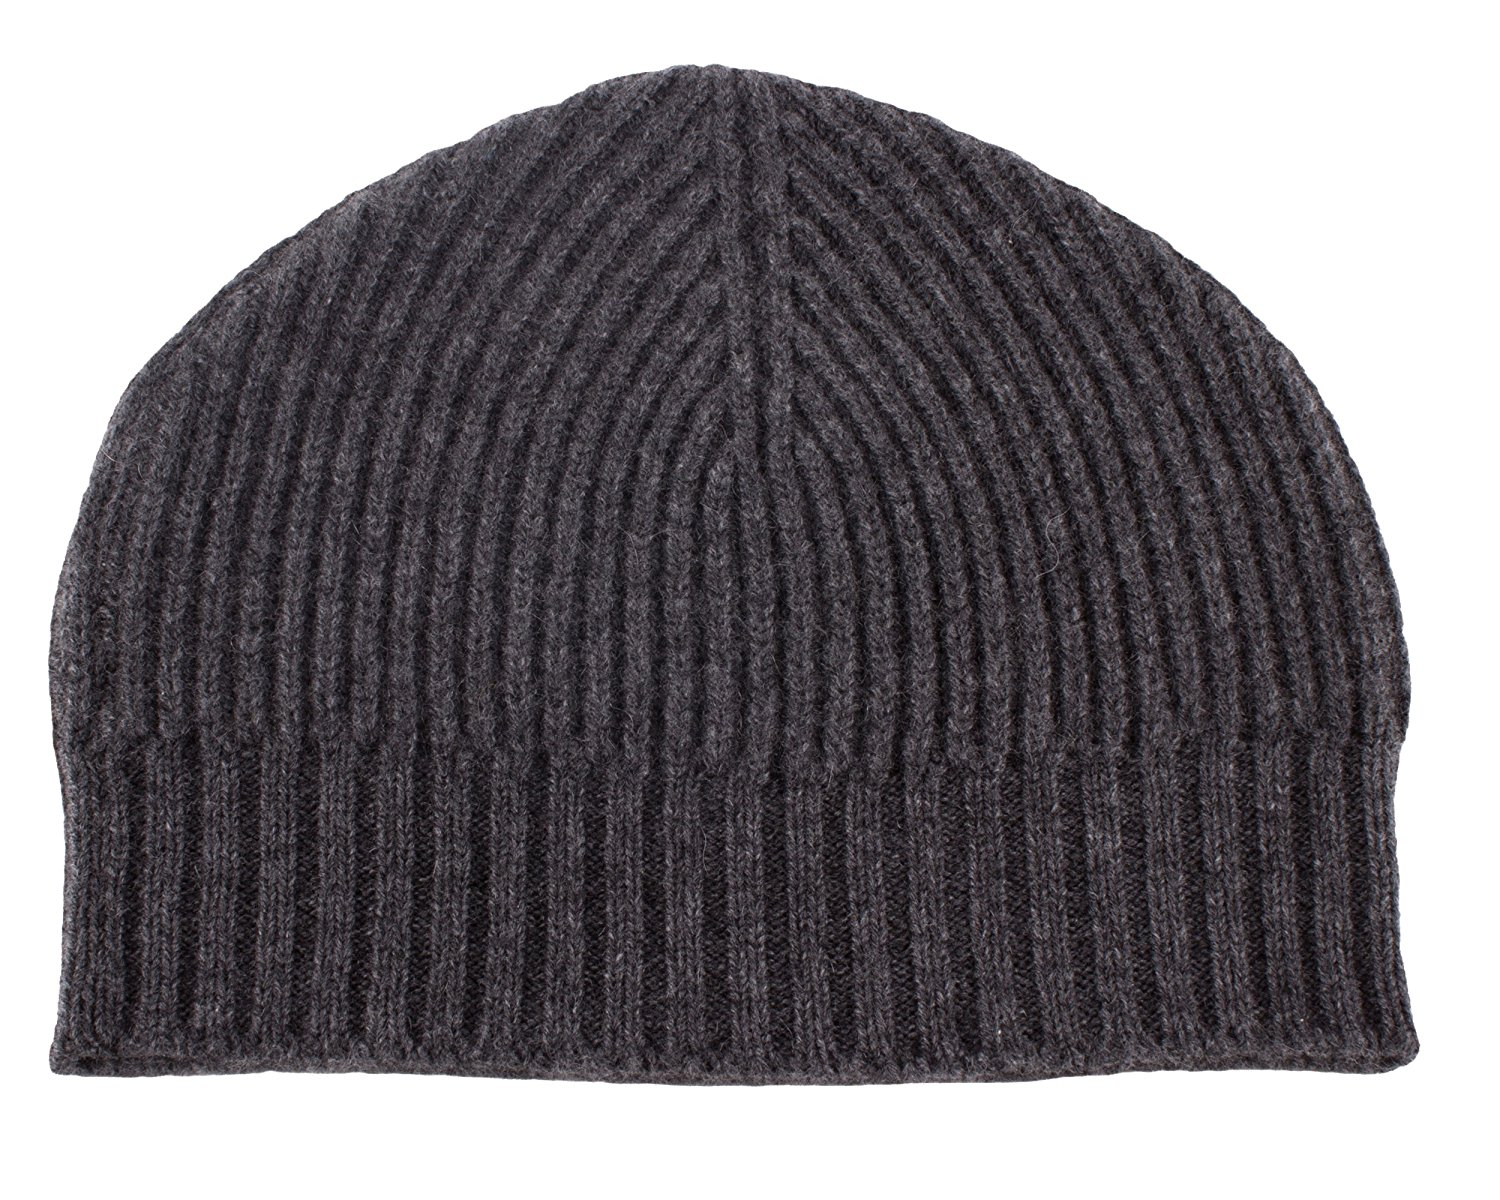 f054064b32e9e Get Quotations · Mens Ribbed 100% Cashmere Beanie Hat - Various Colors -  made in Scotland by Love